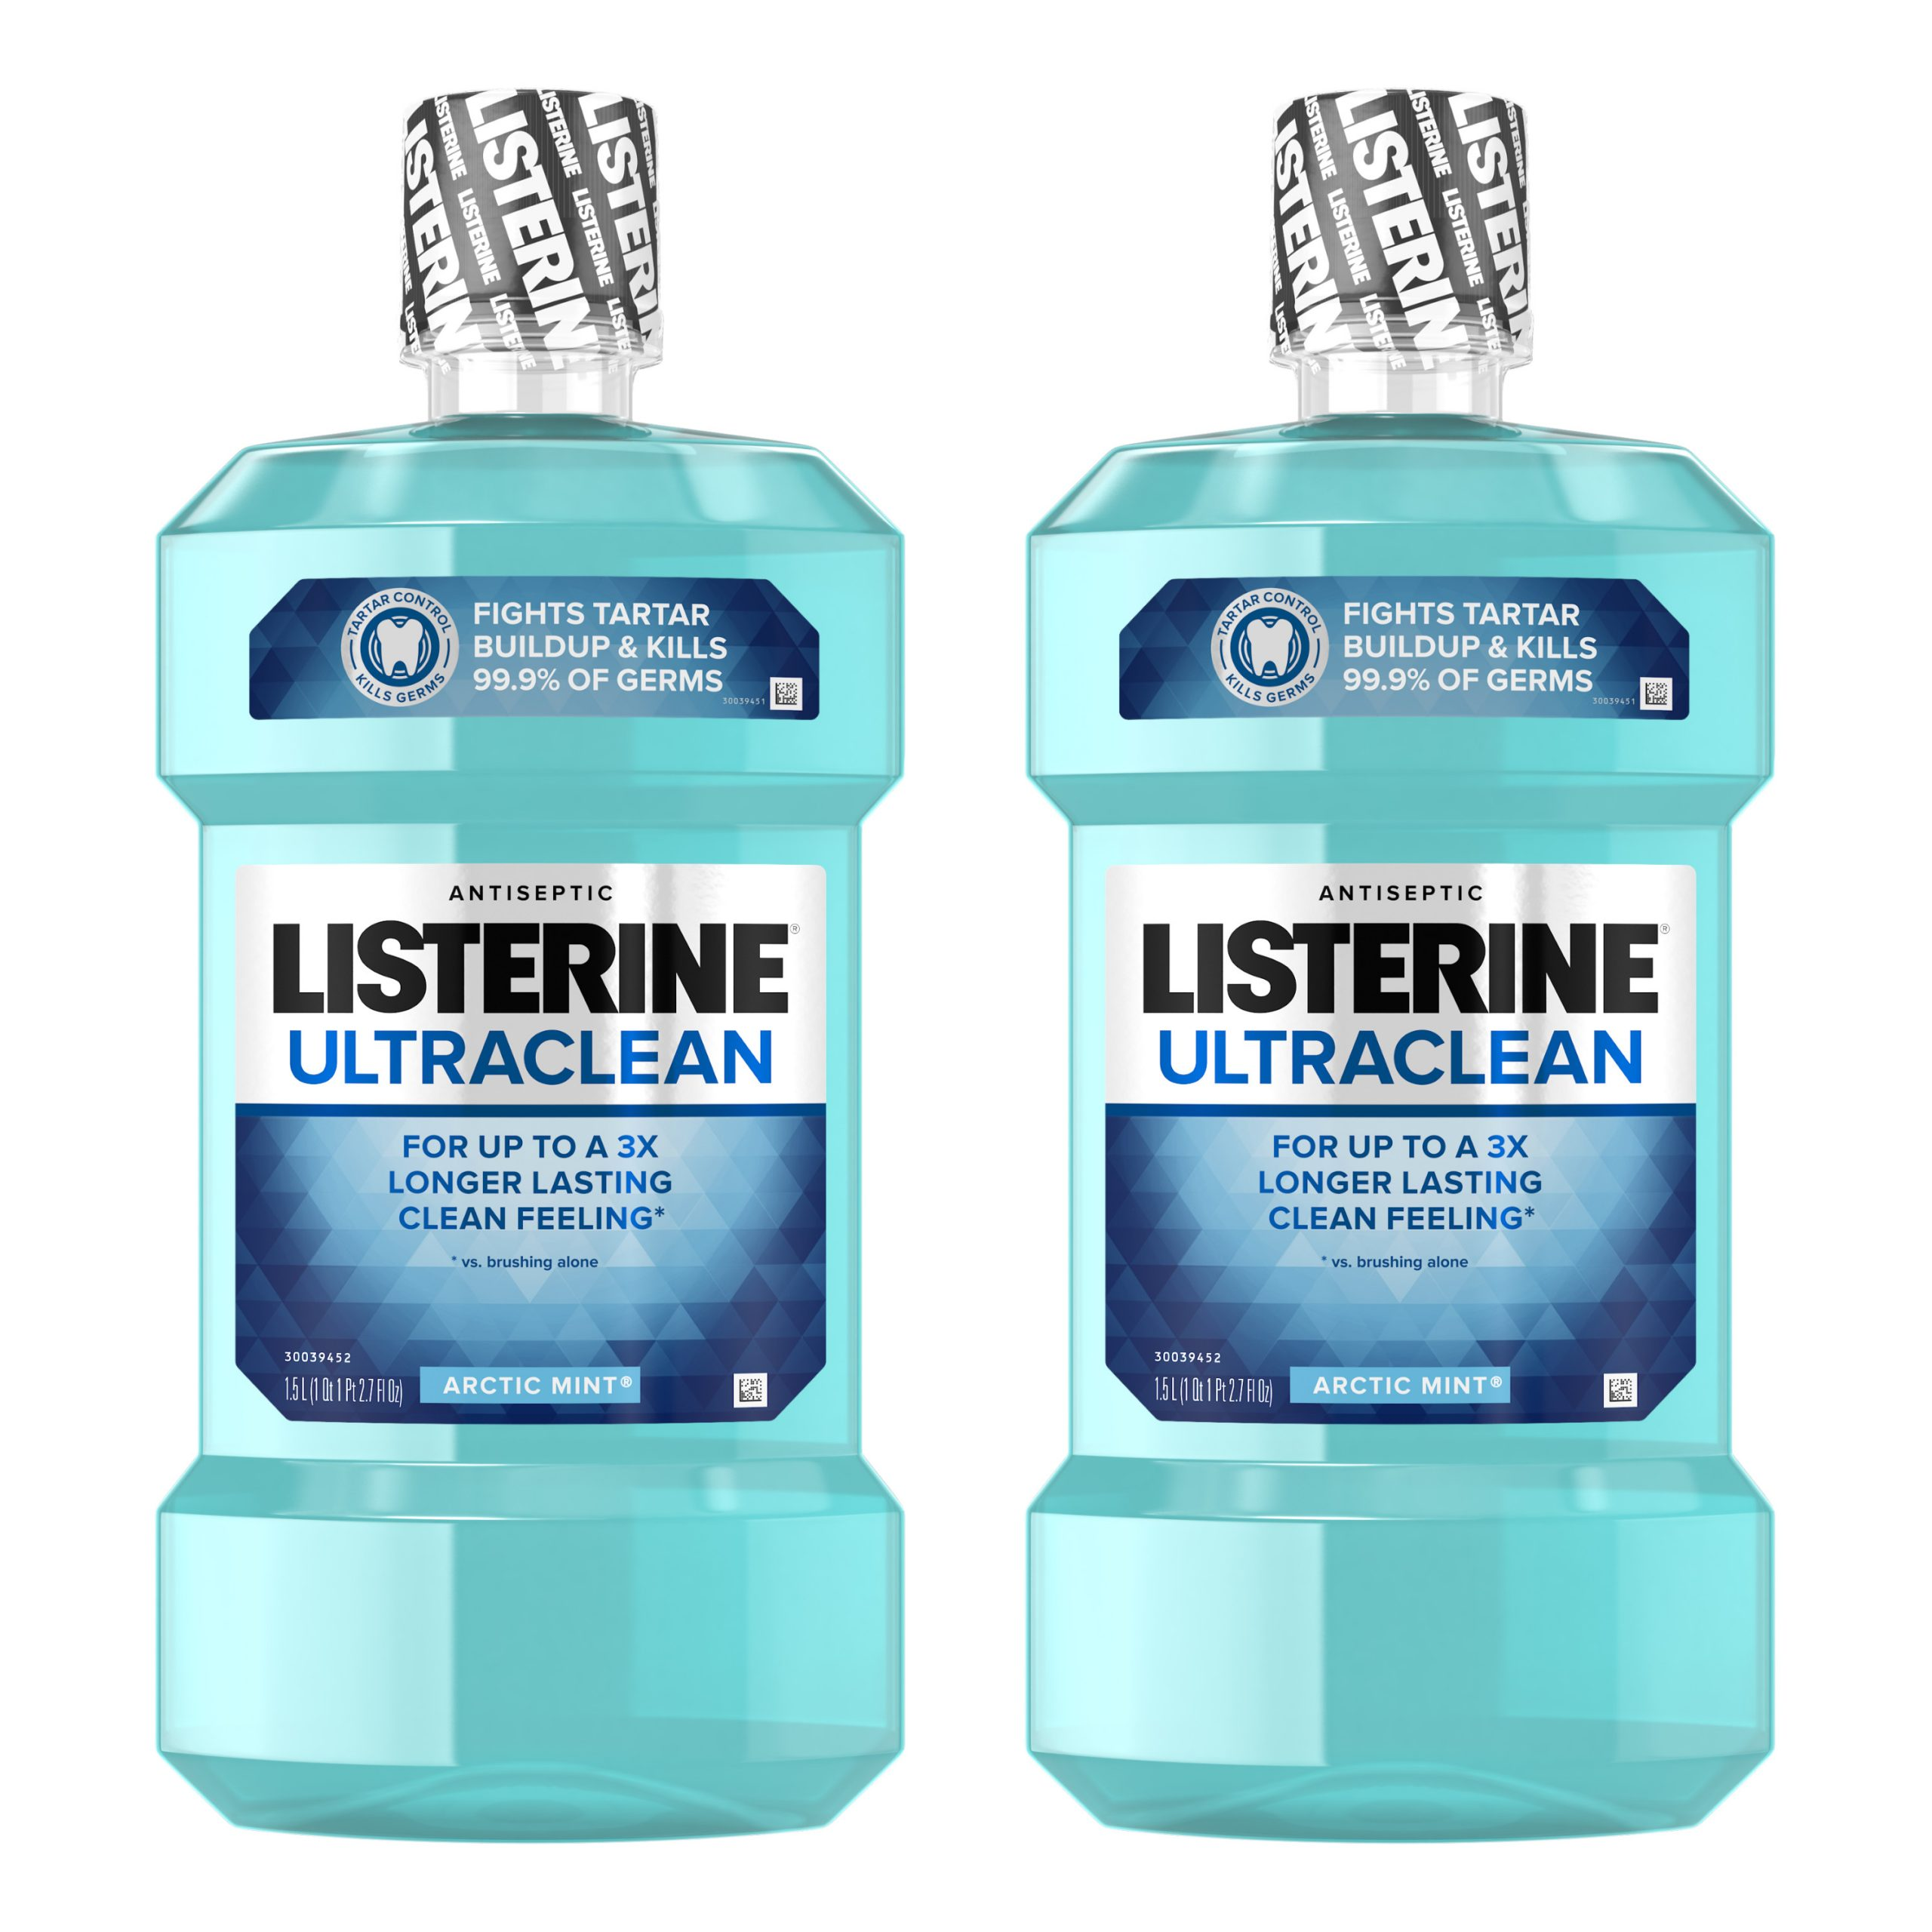 Listerine Ultraclean Oral Care Antiseptic Mouthwash with Everfresh Technology to Help Fight Bad Breath, Gingivitis, Plaque and Tartar, Arctic Mint, 1.5 l (Pack of 6)